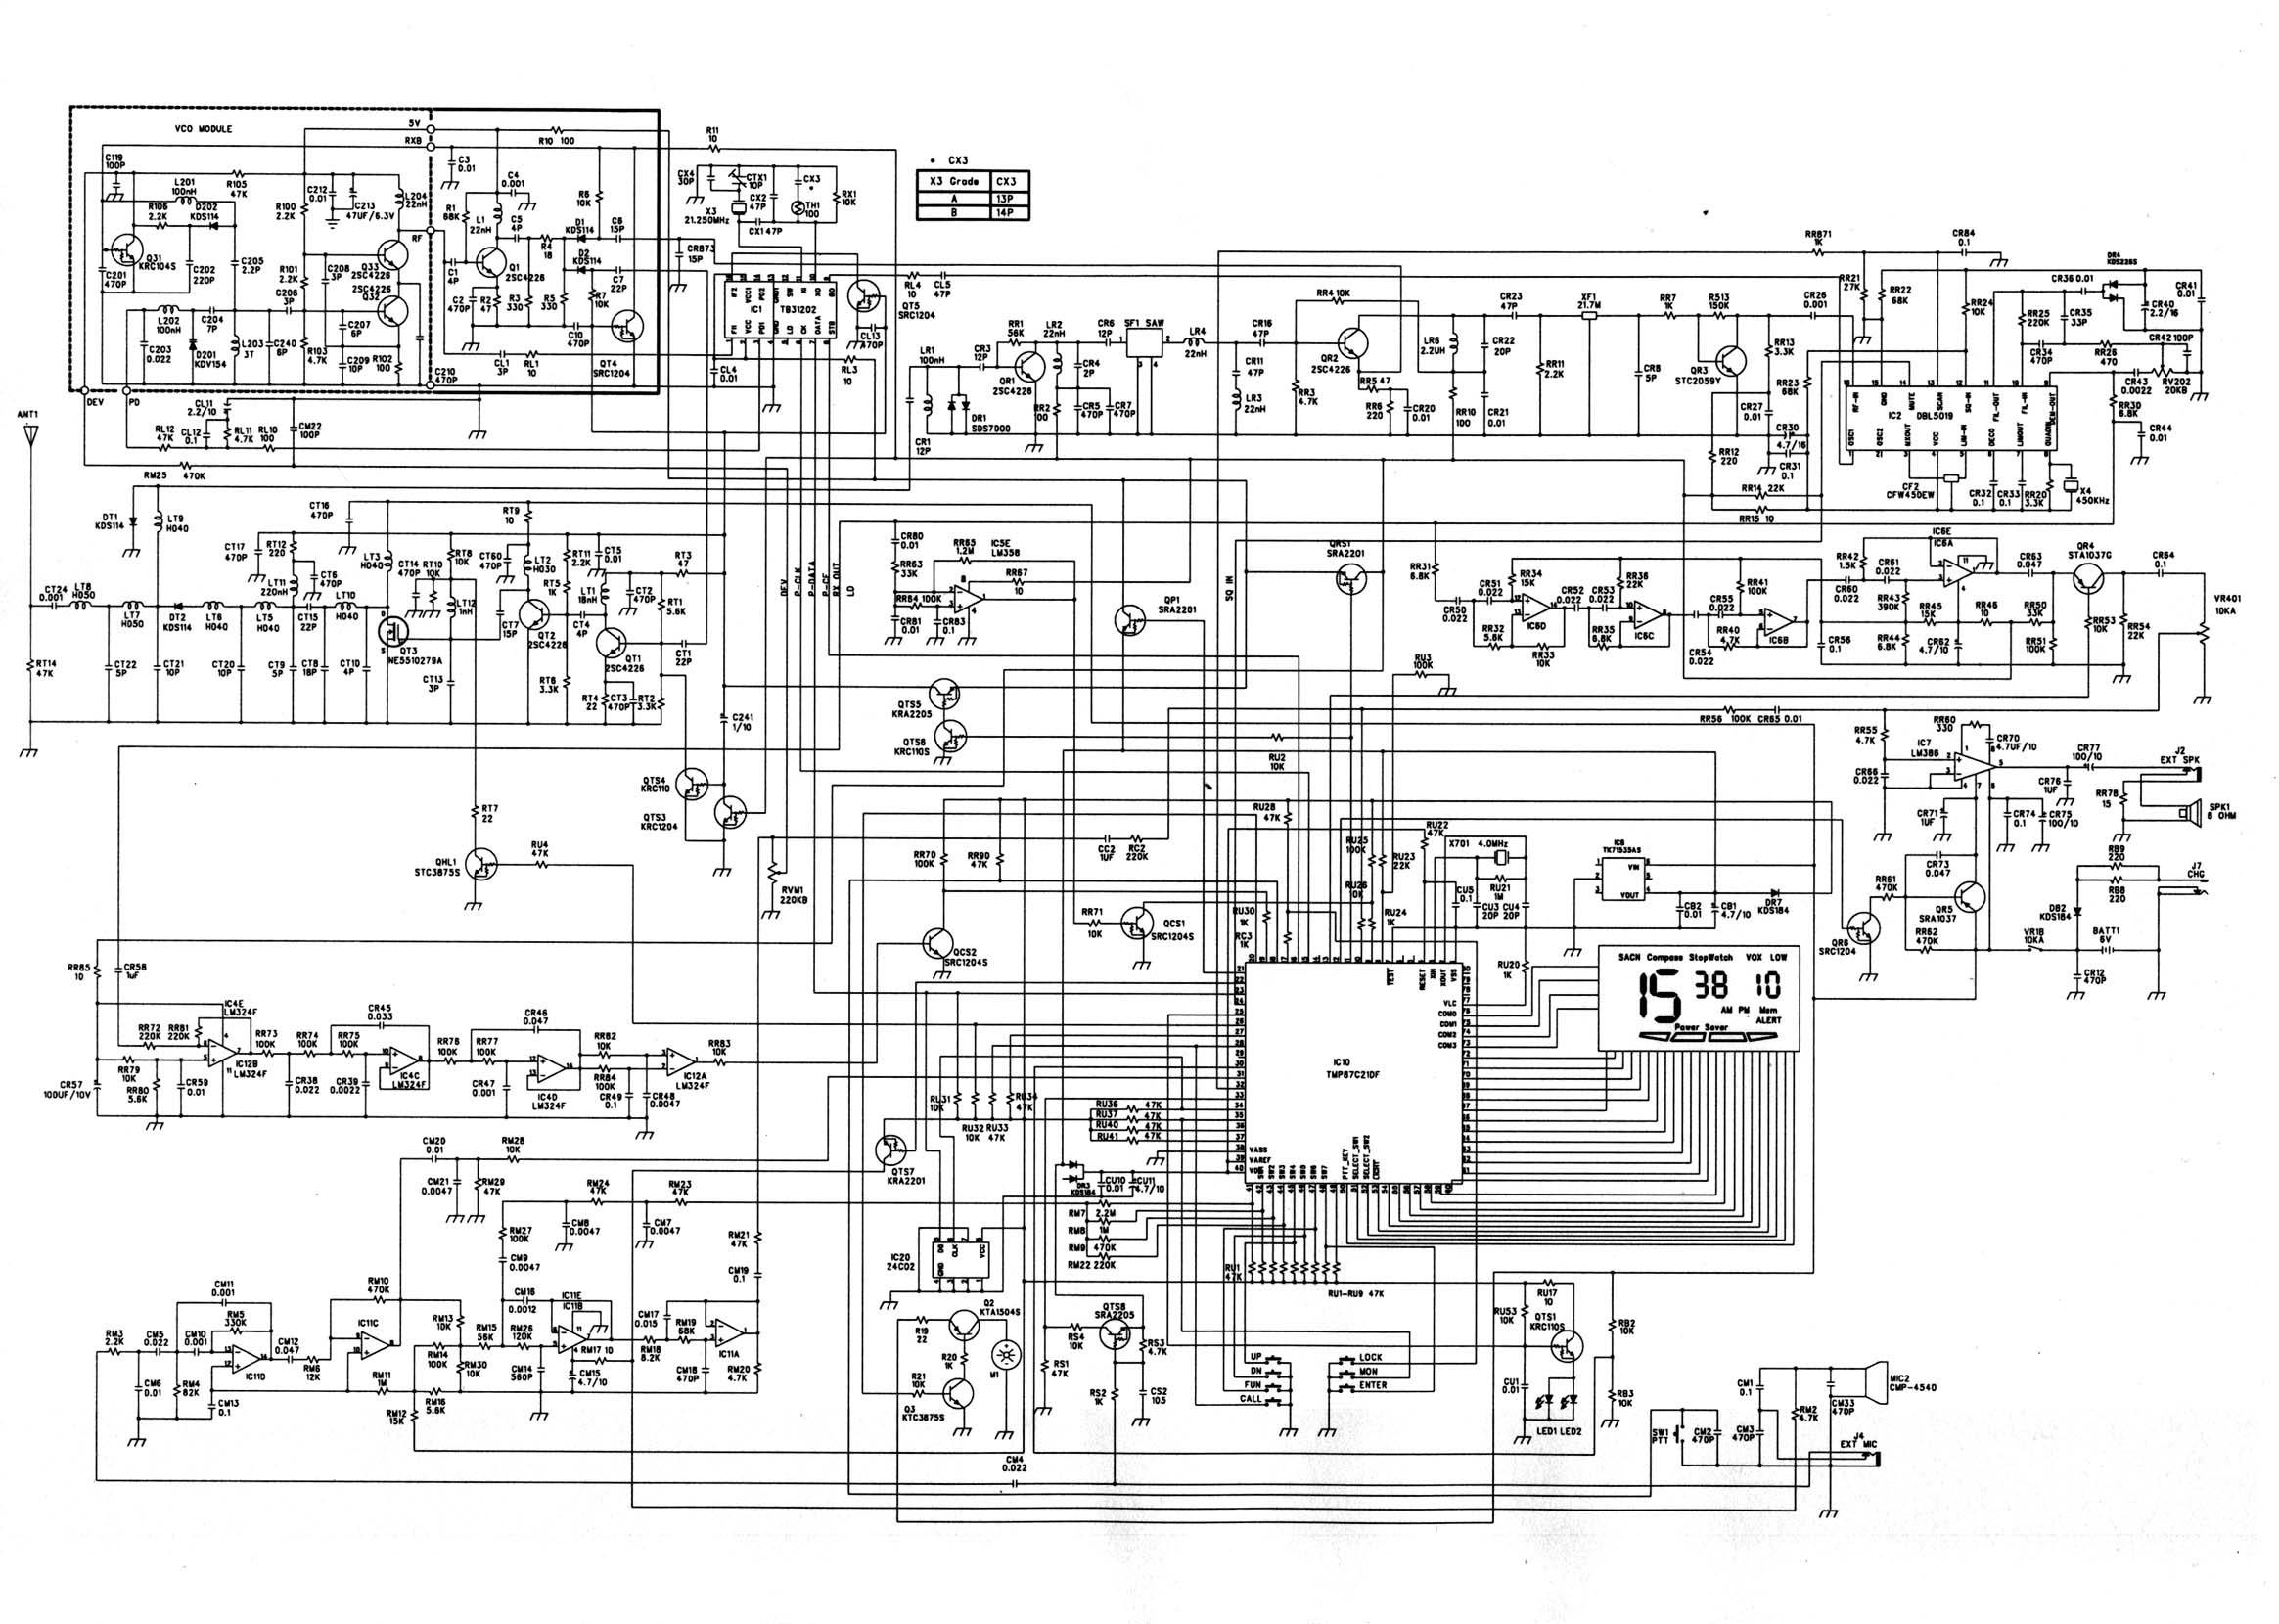 Circuit diagram software linux free download wiring diagram xwiaw free download wiring diagram linux frs radio control of circuit diagram software linux on xwiaw swarovskicordoba Image collections